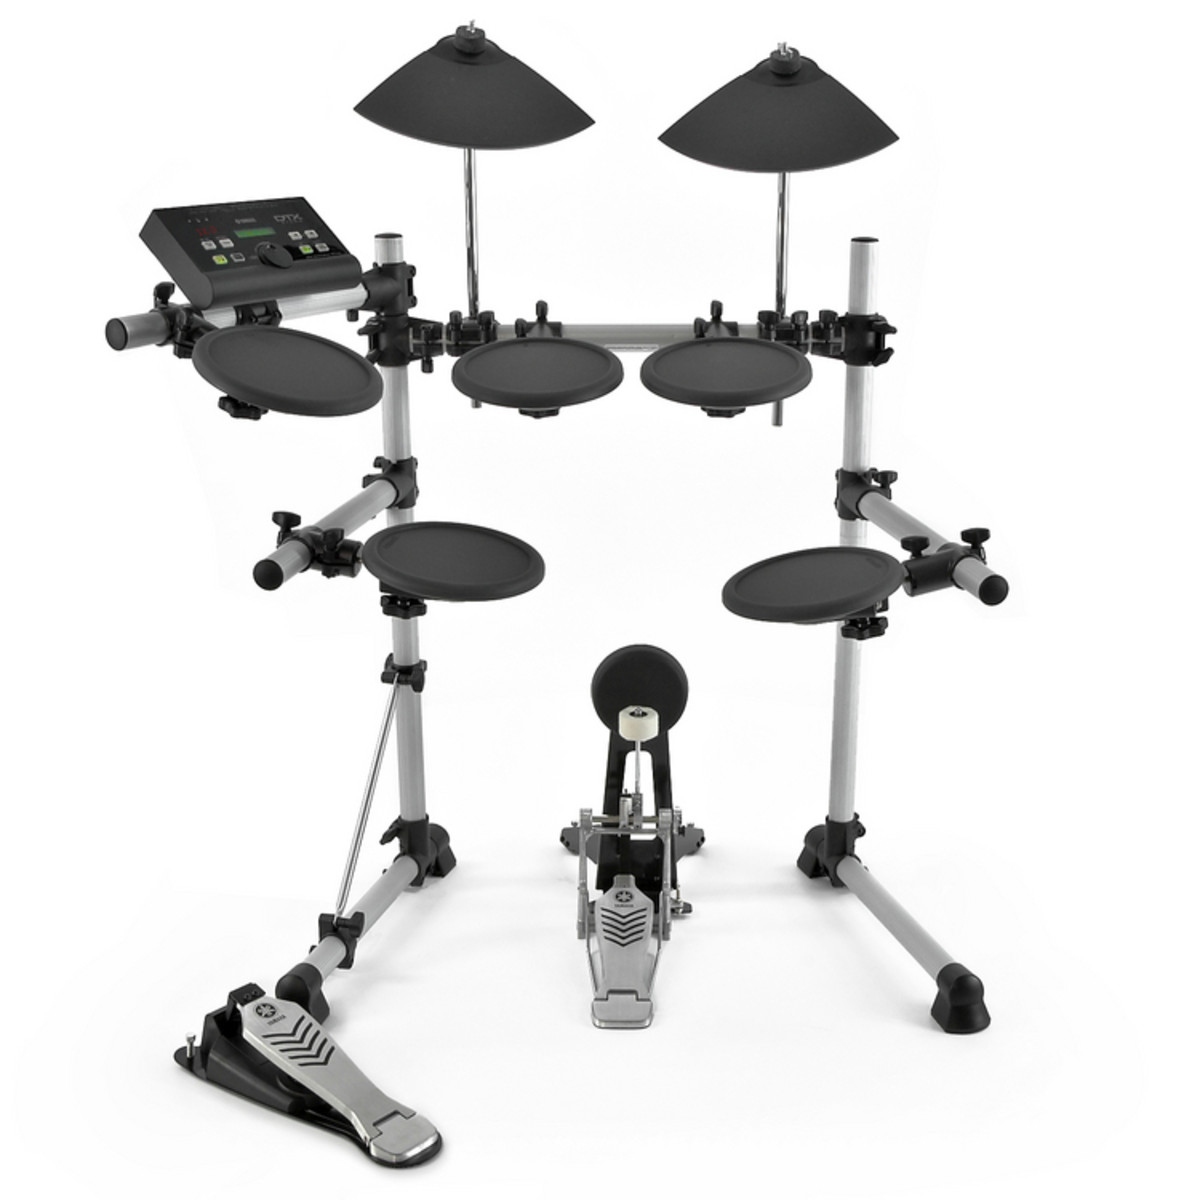 Disc yamaha dtx500k electronic drum kit at for Yamaha electronic drum sets